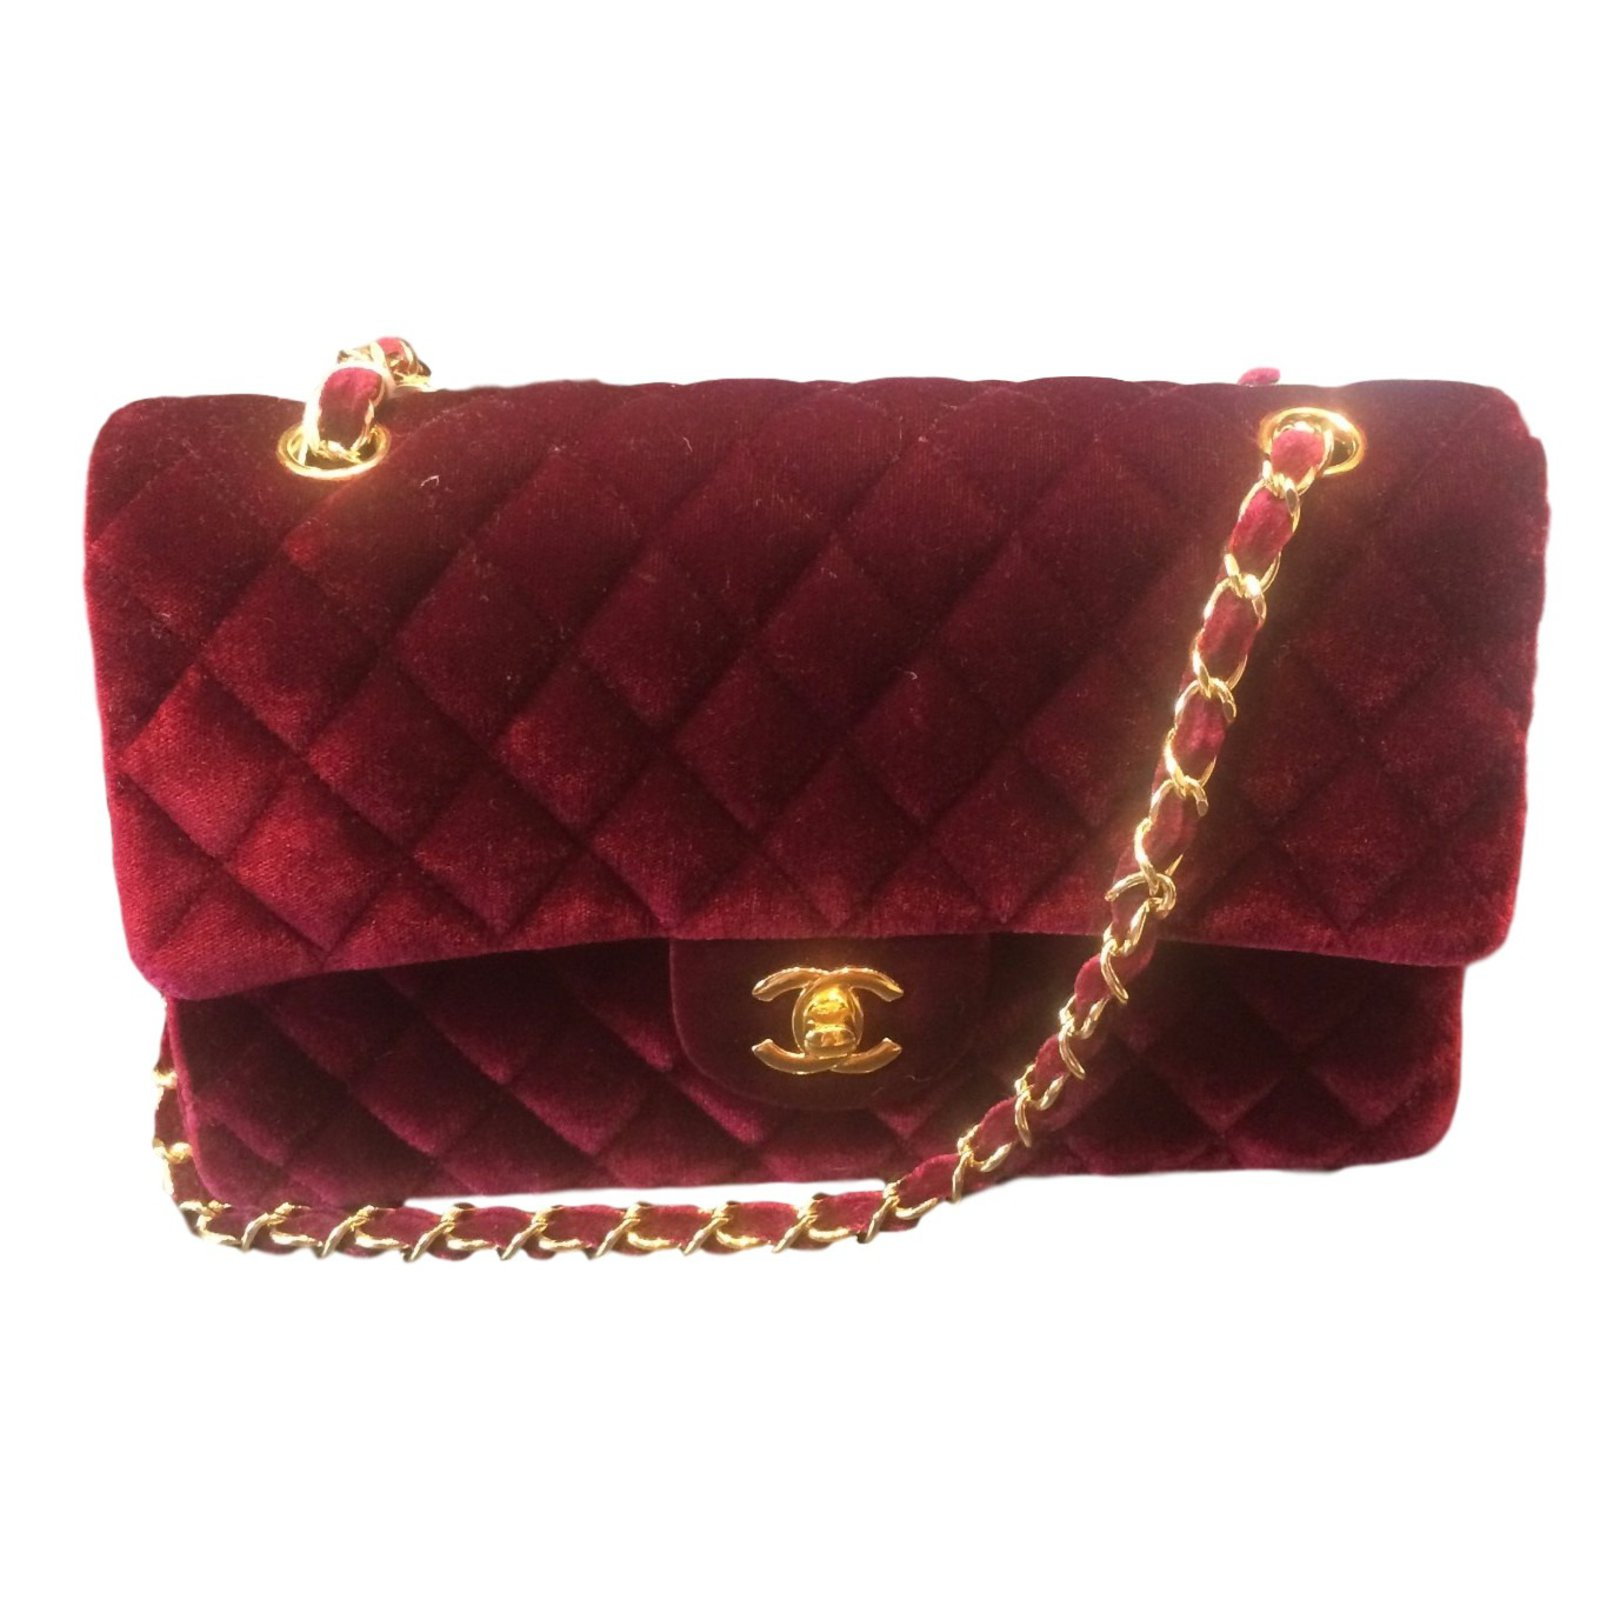 3ce2d738a80c8e Chanel Timeless velvet bordeaux Handbags Velvet Dark red ref.20390 ...